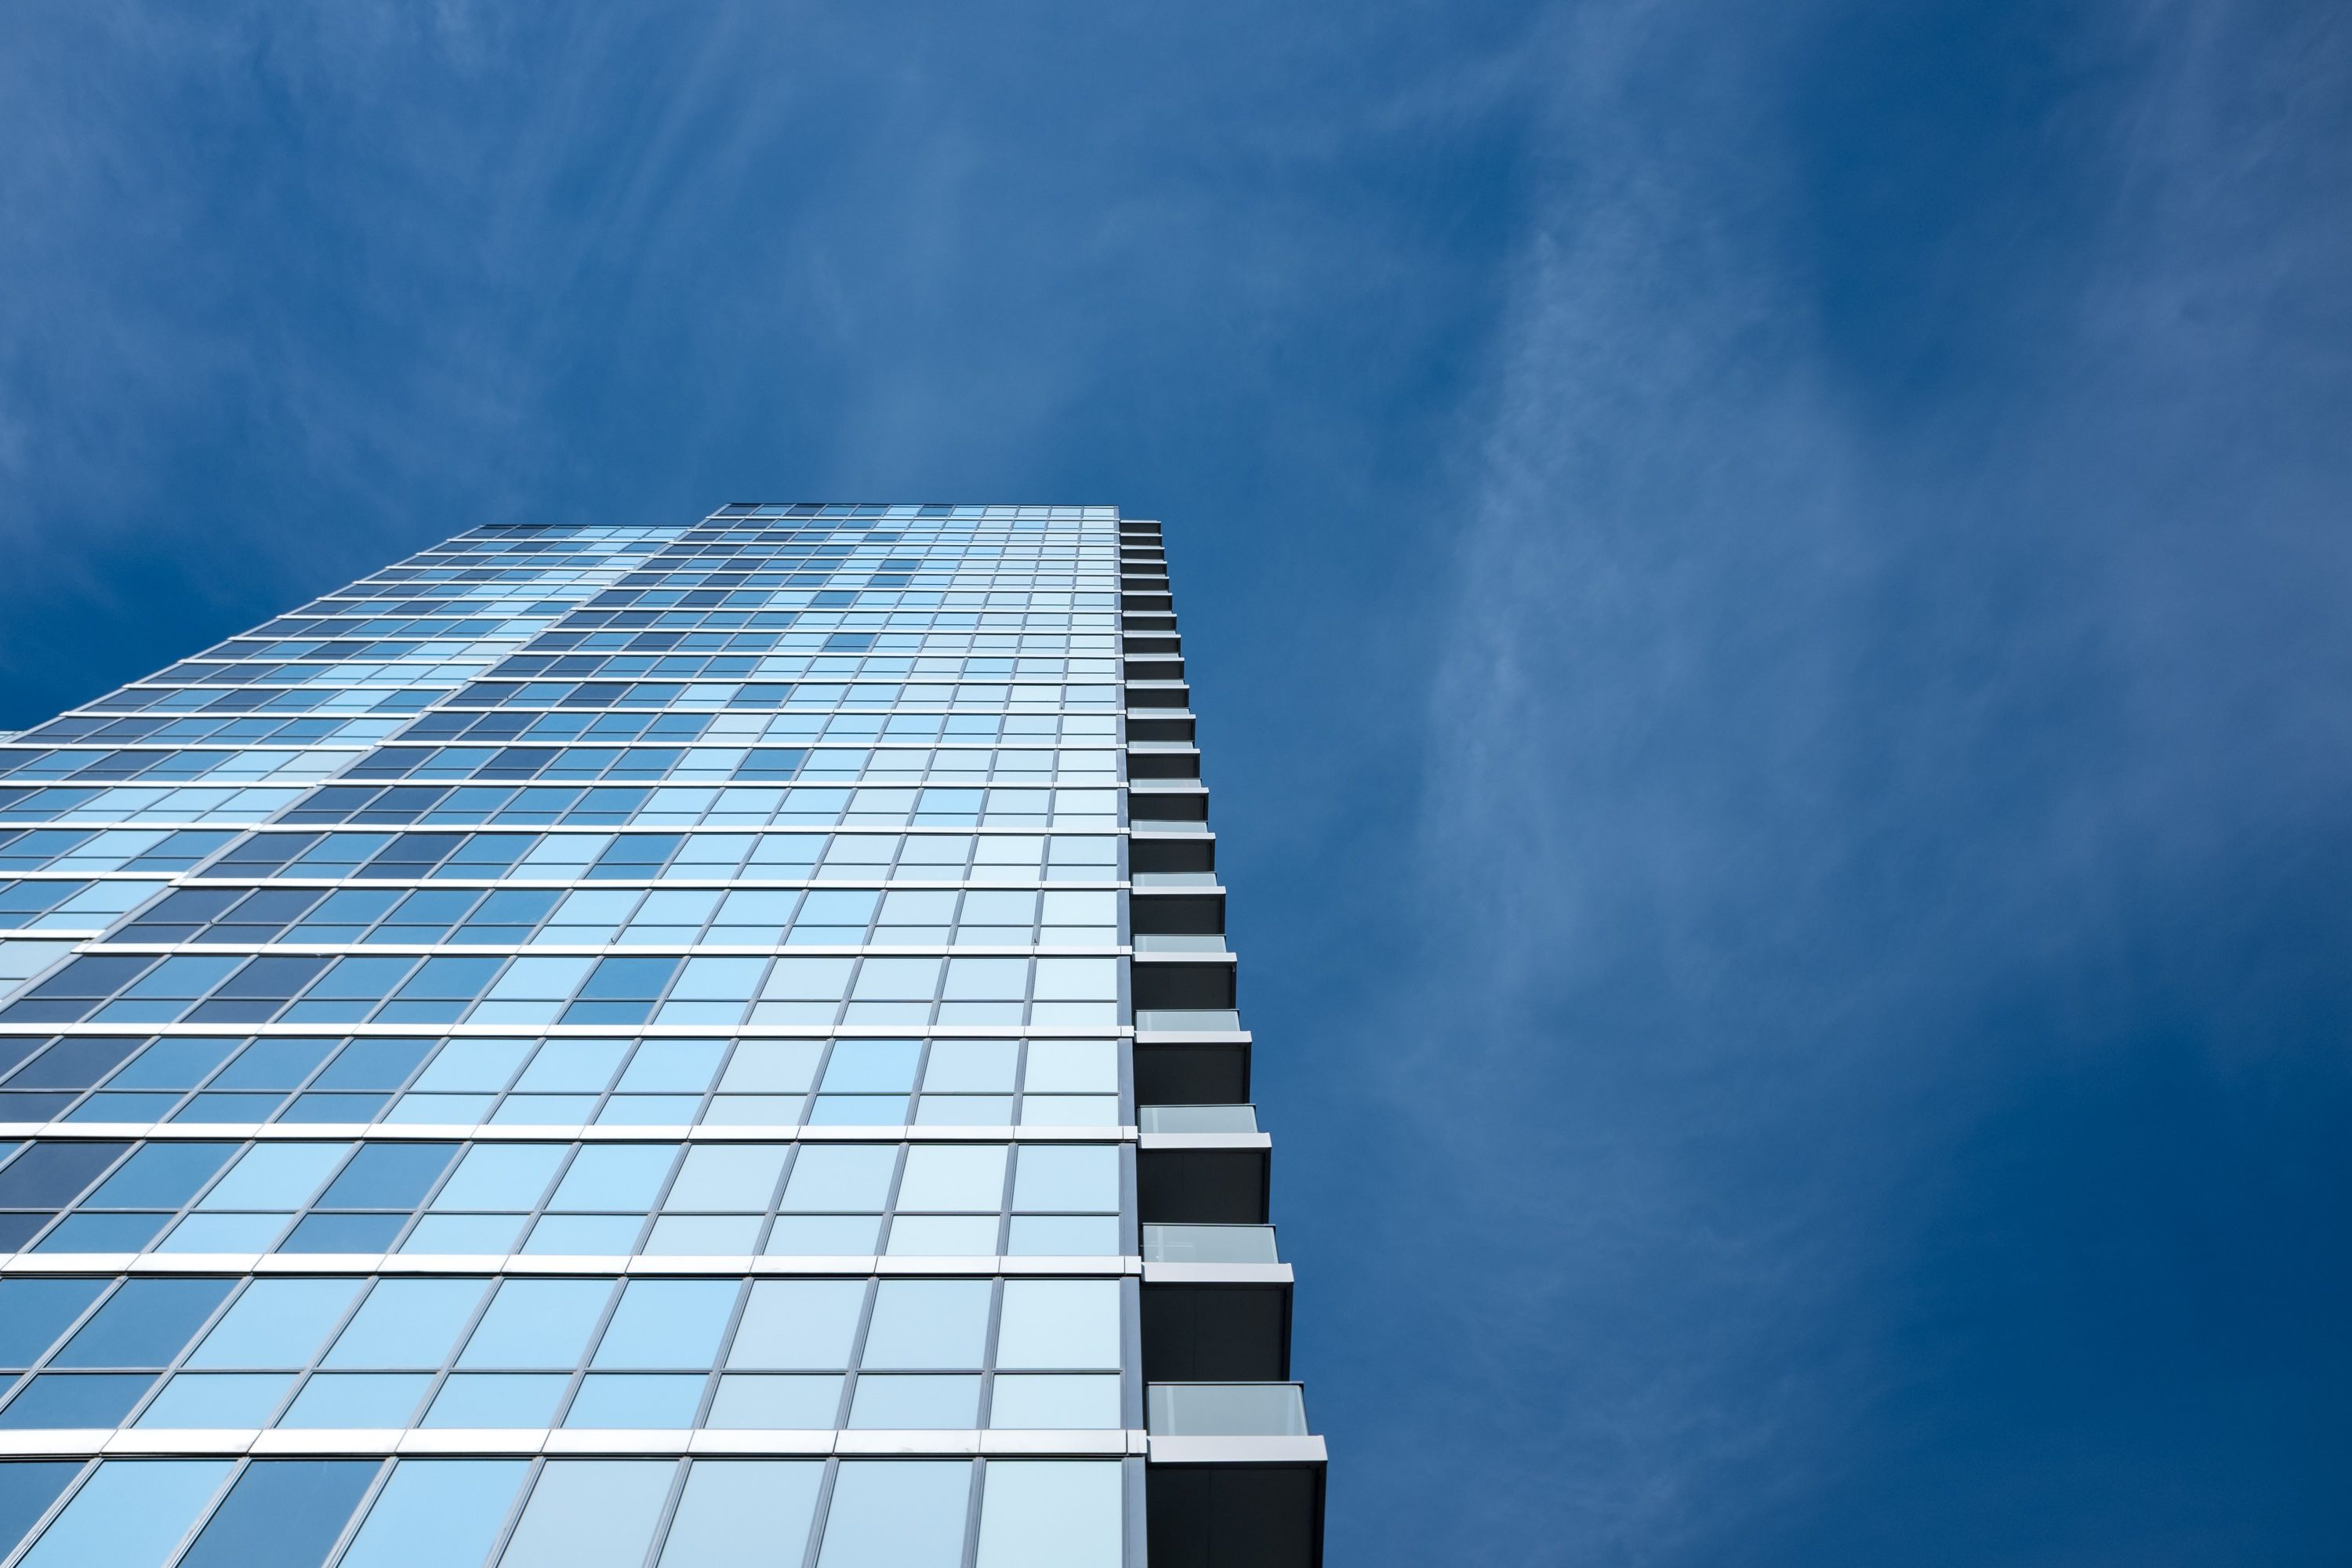 I found myself noticing interesting angles in architecture, which prompted a series of shots like this one.